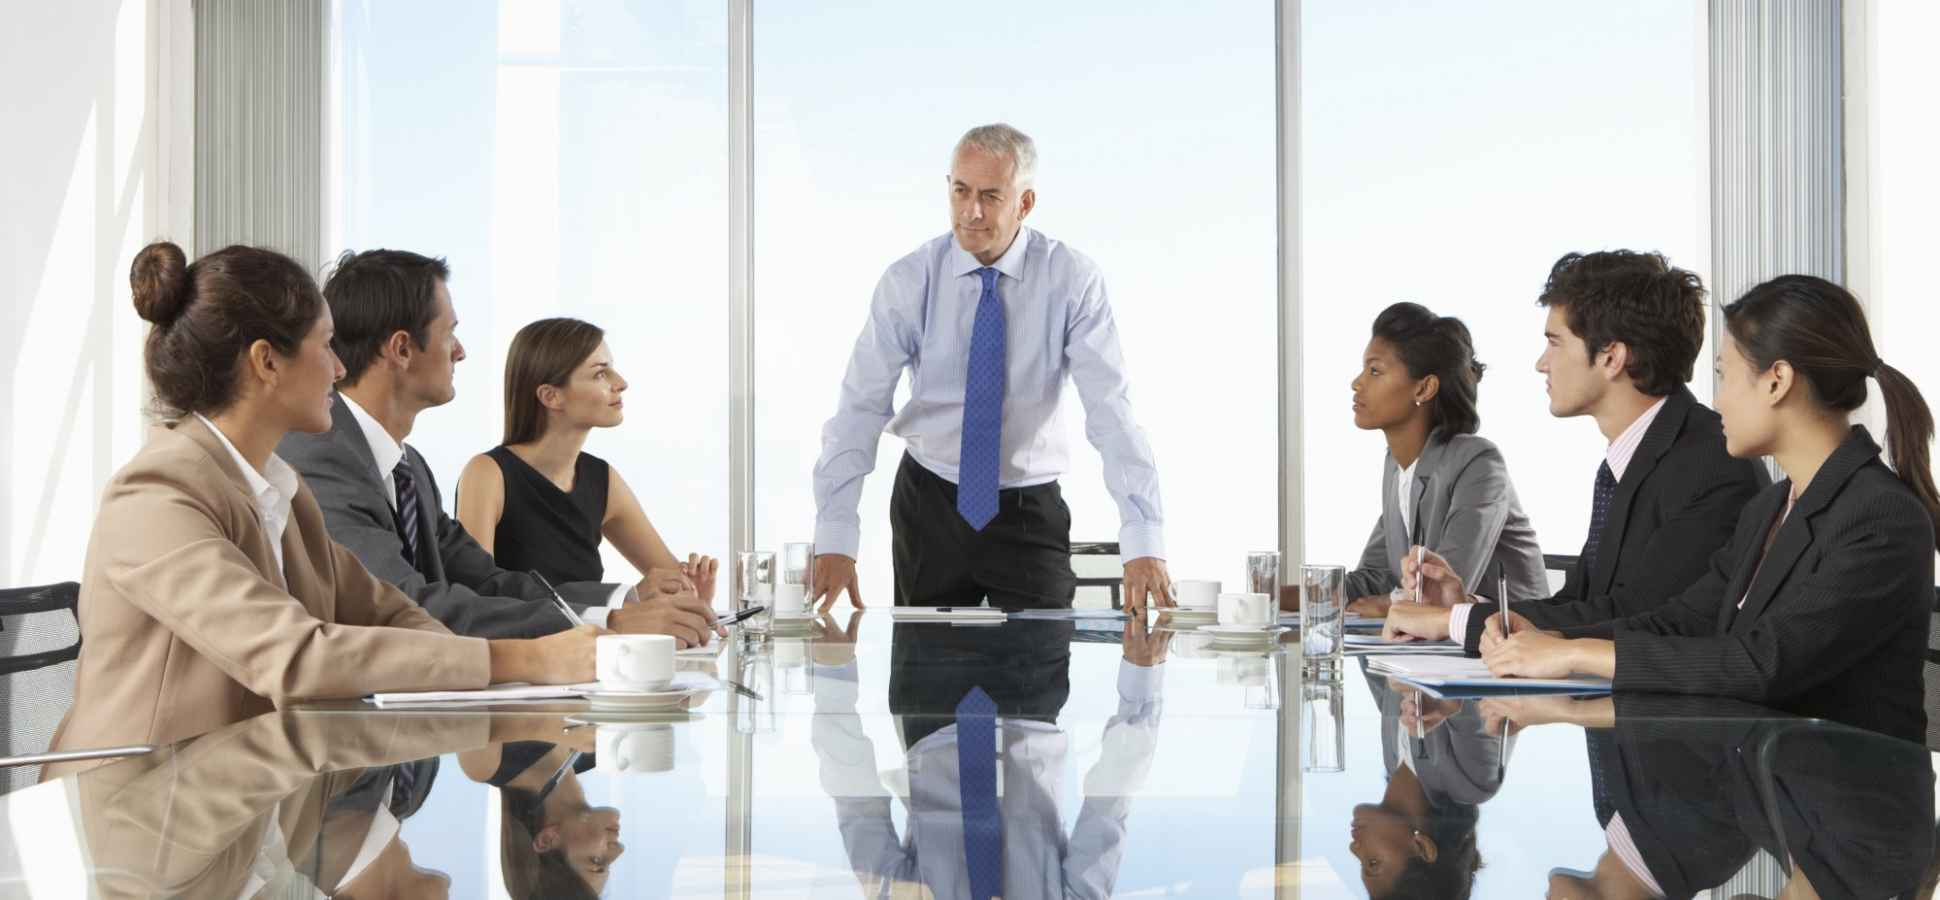 Most CEOs Are Not Thought Leaders. Here's Why